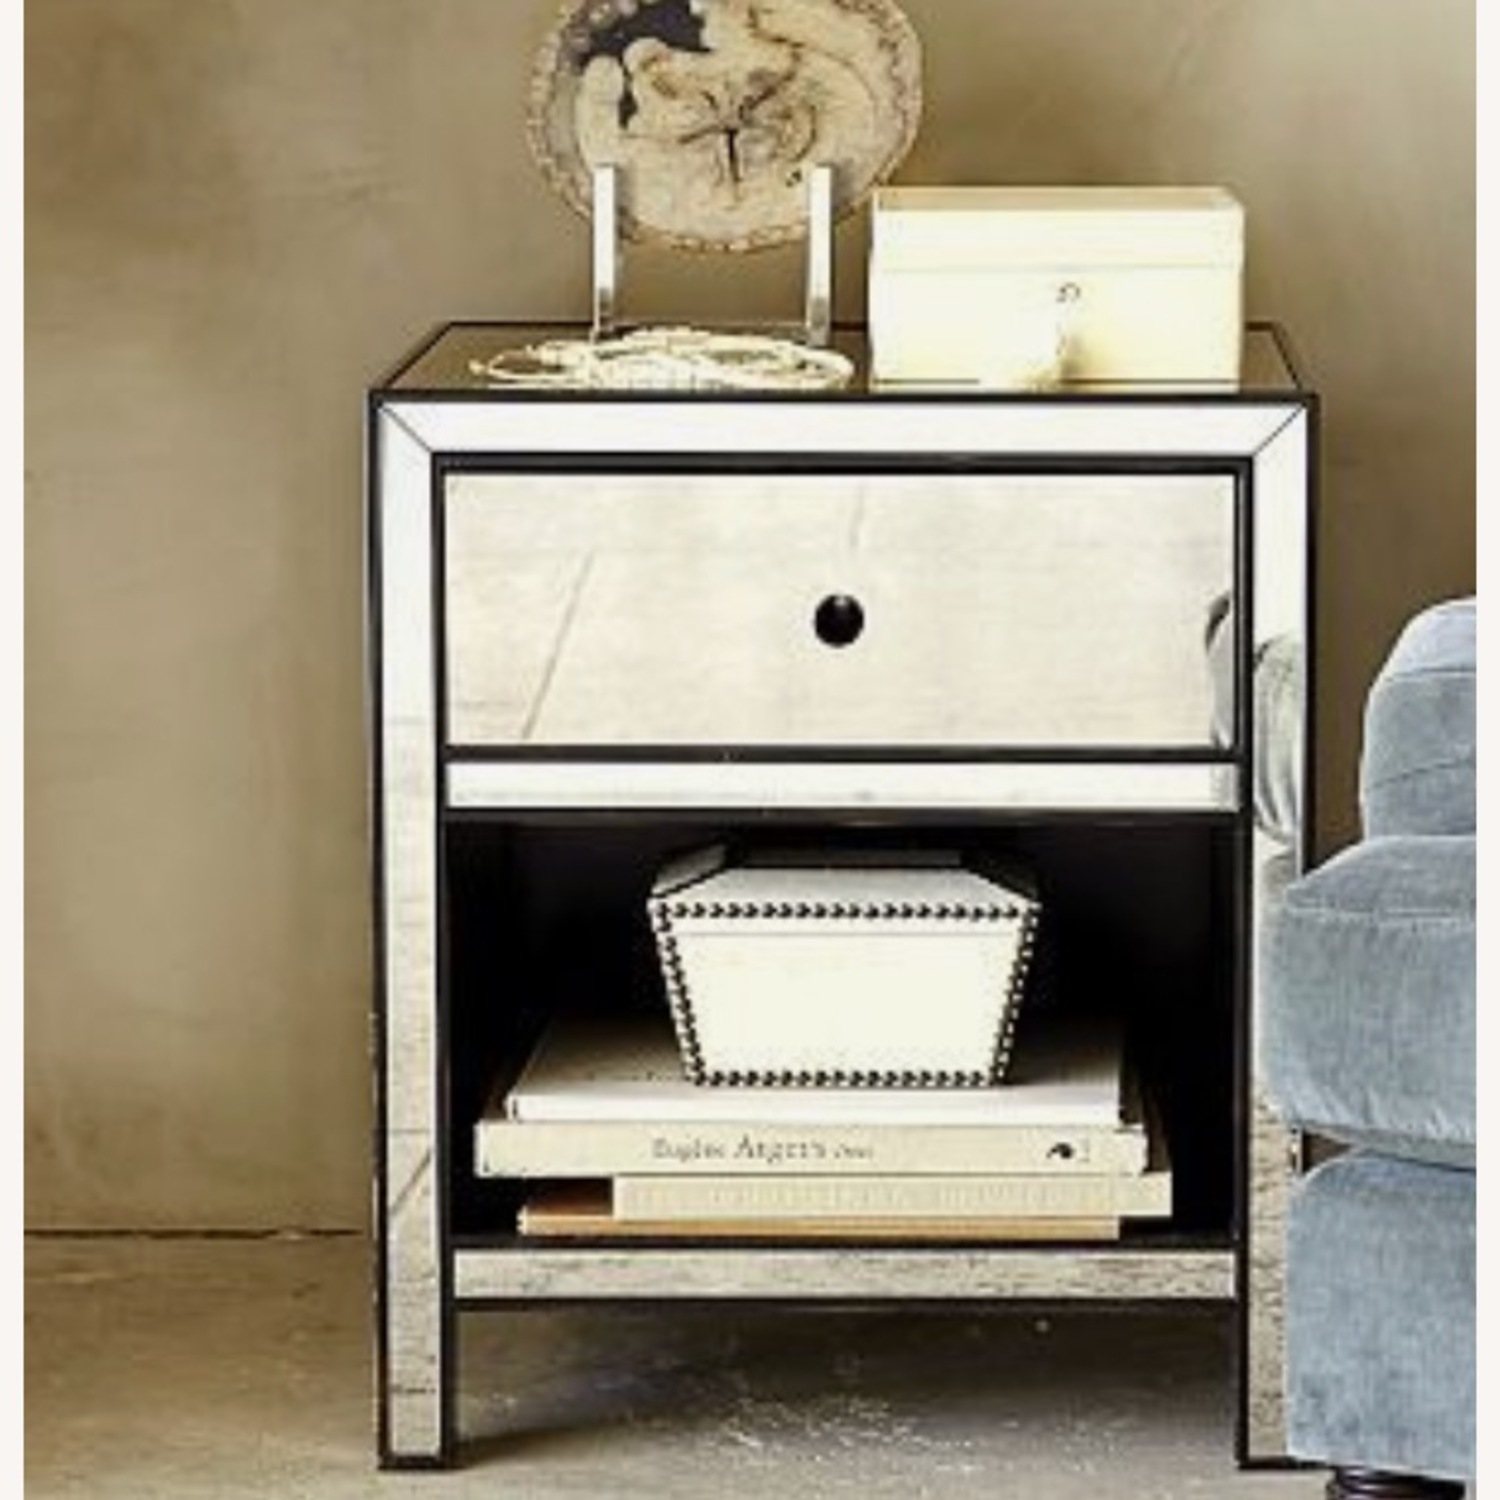 Pottery Barn Mirrored Bedside Tables - image-1